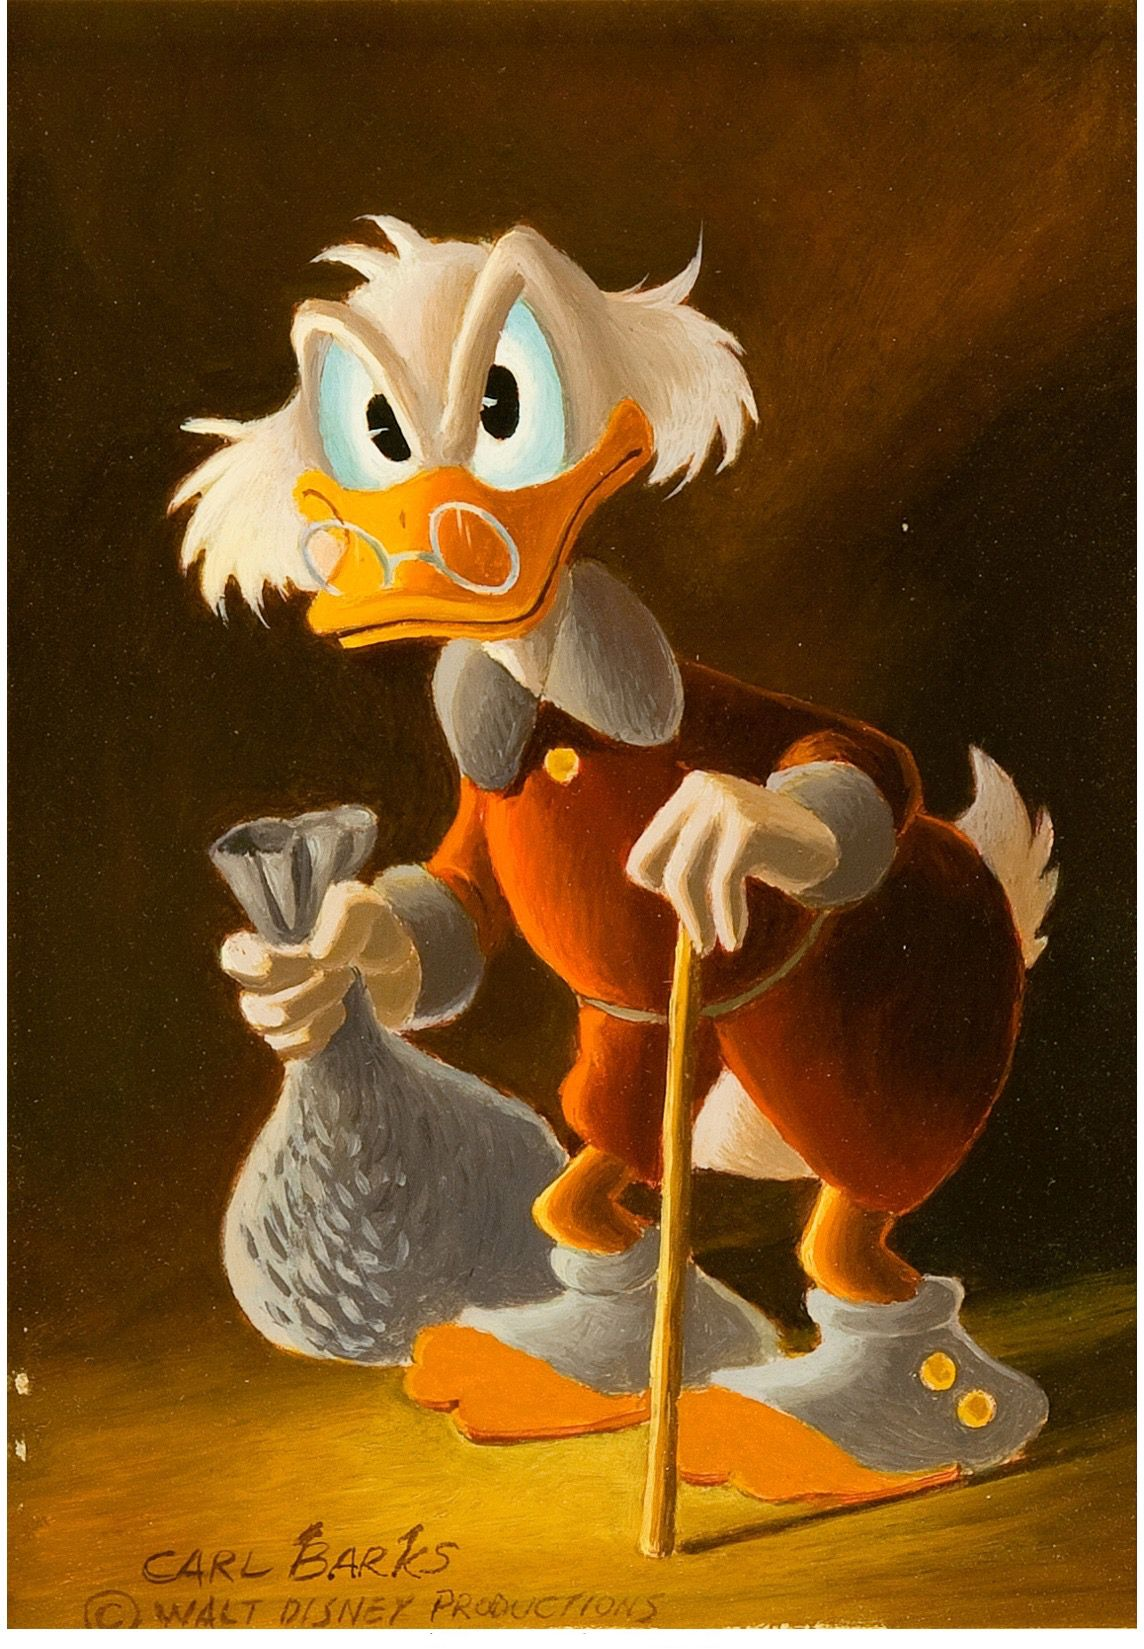 cd2d2c251 Uncle Scrooge with Money Bag. Oil painting by Carl Barks of perhaps his  most famous character, circa 1971.